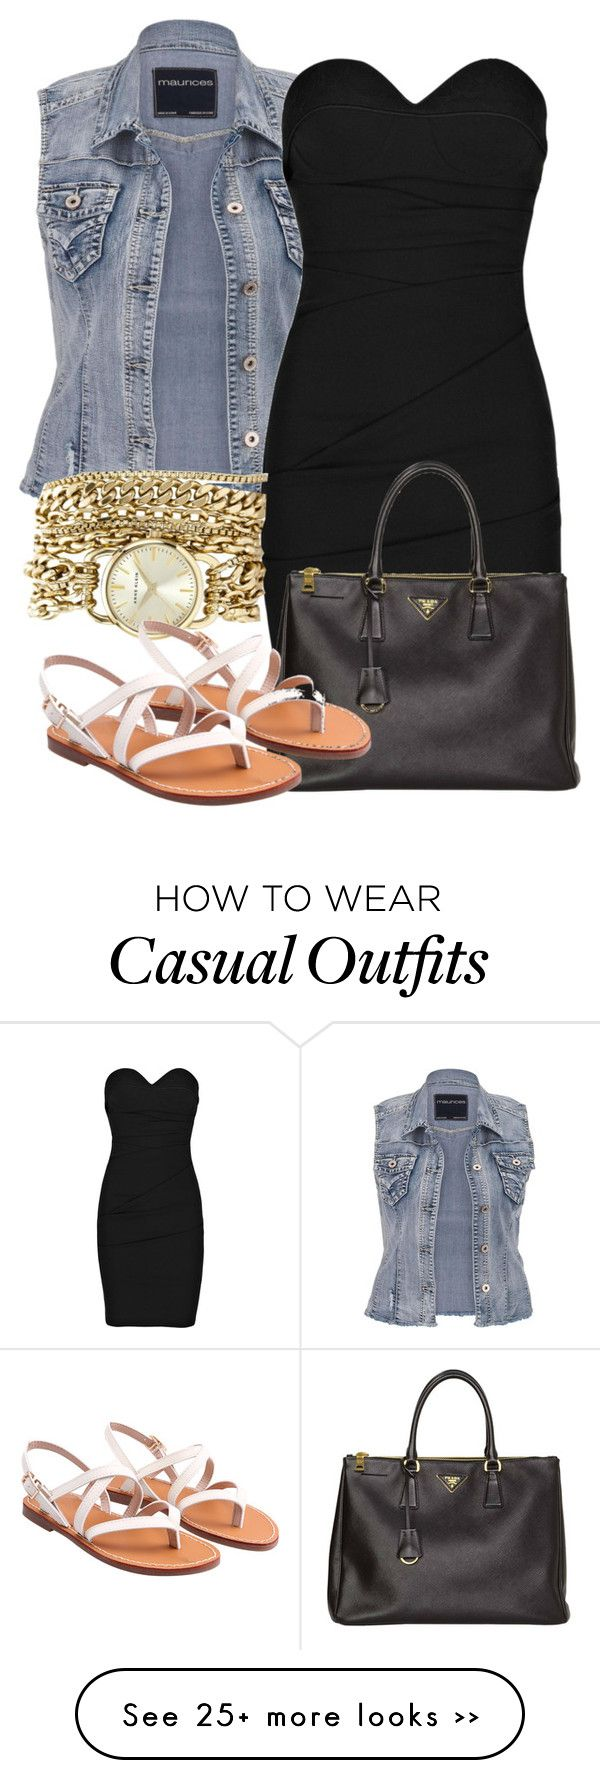 """Little Black casual dress"" by reishelalynna on Polyvore"